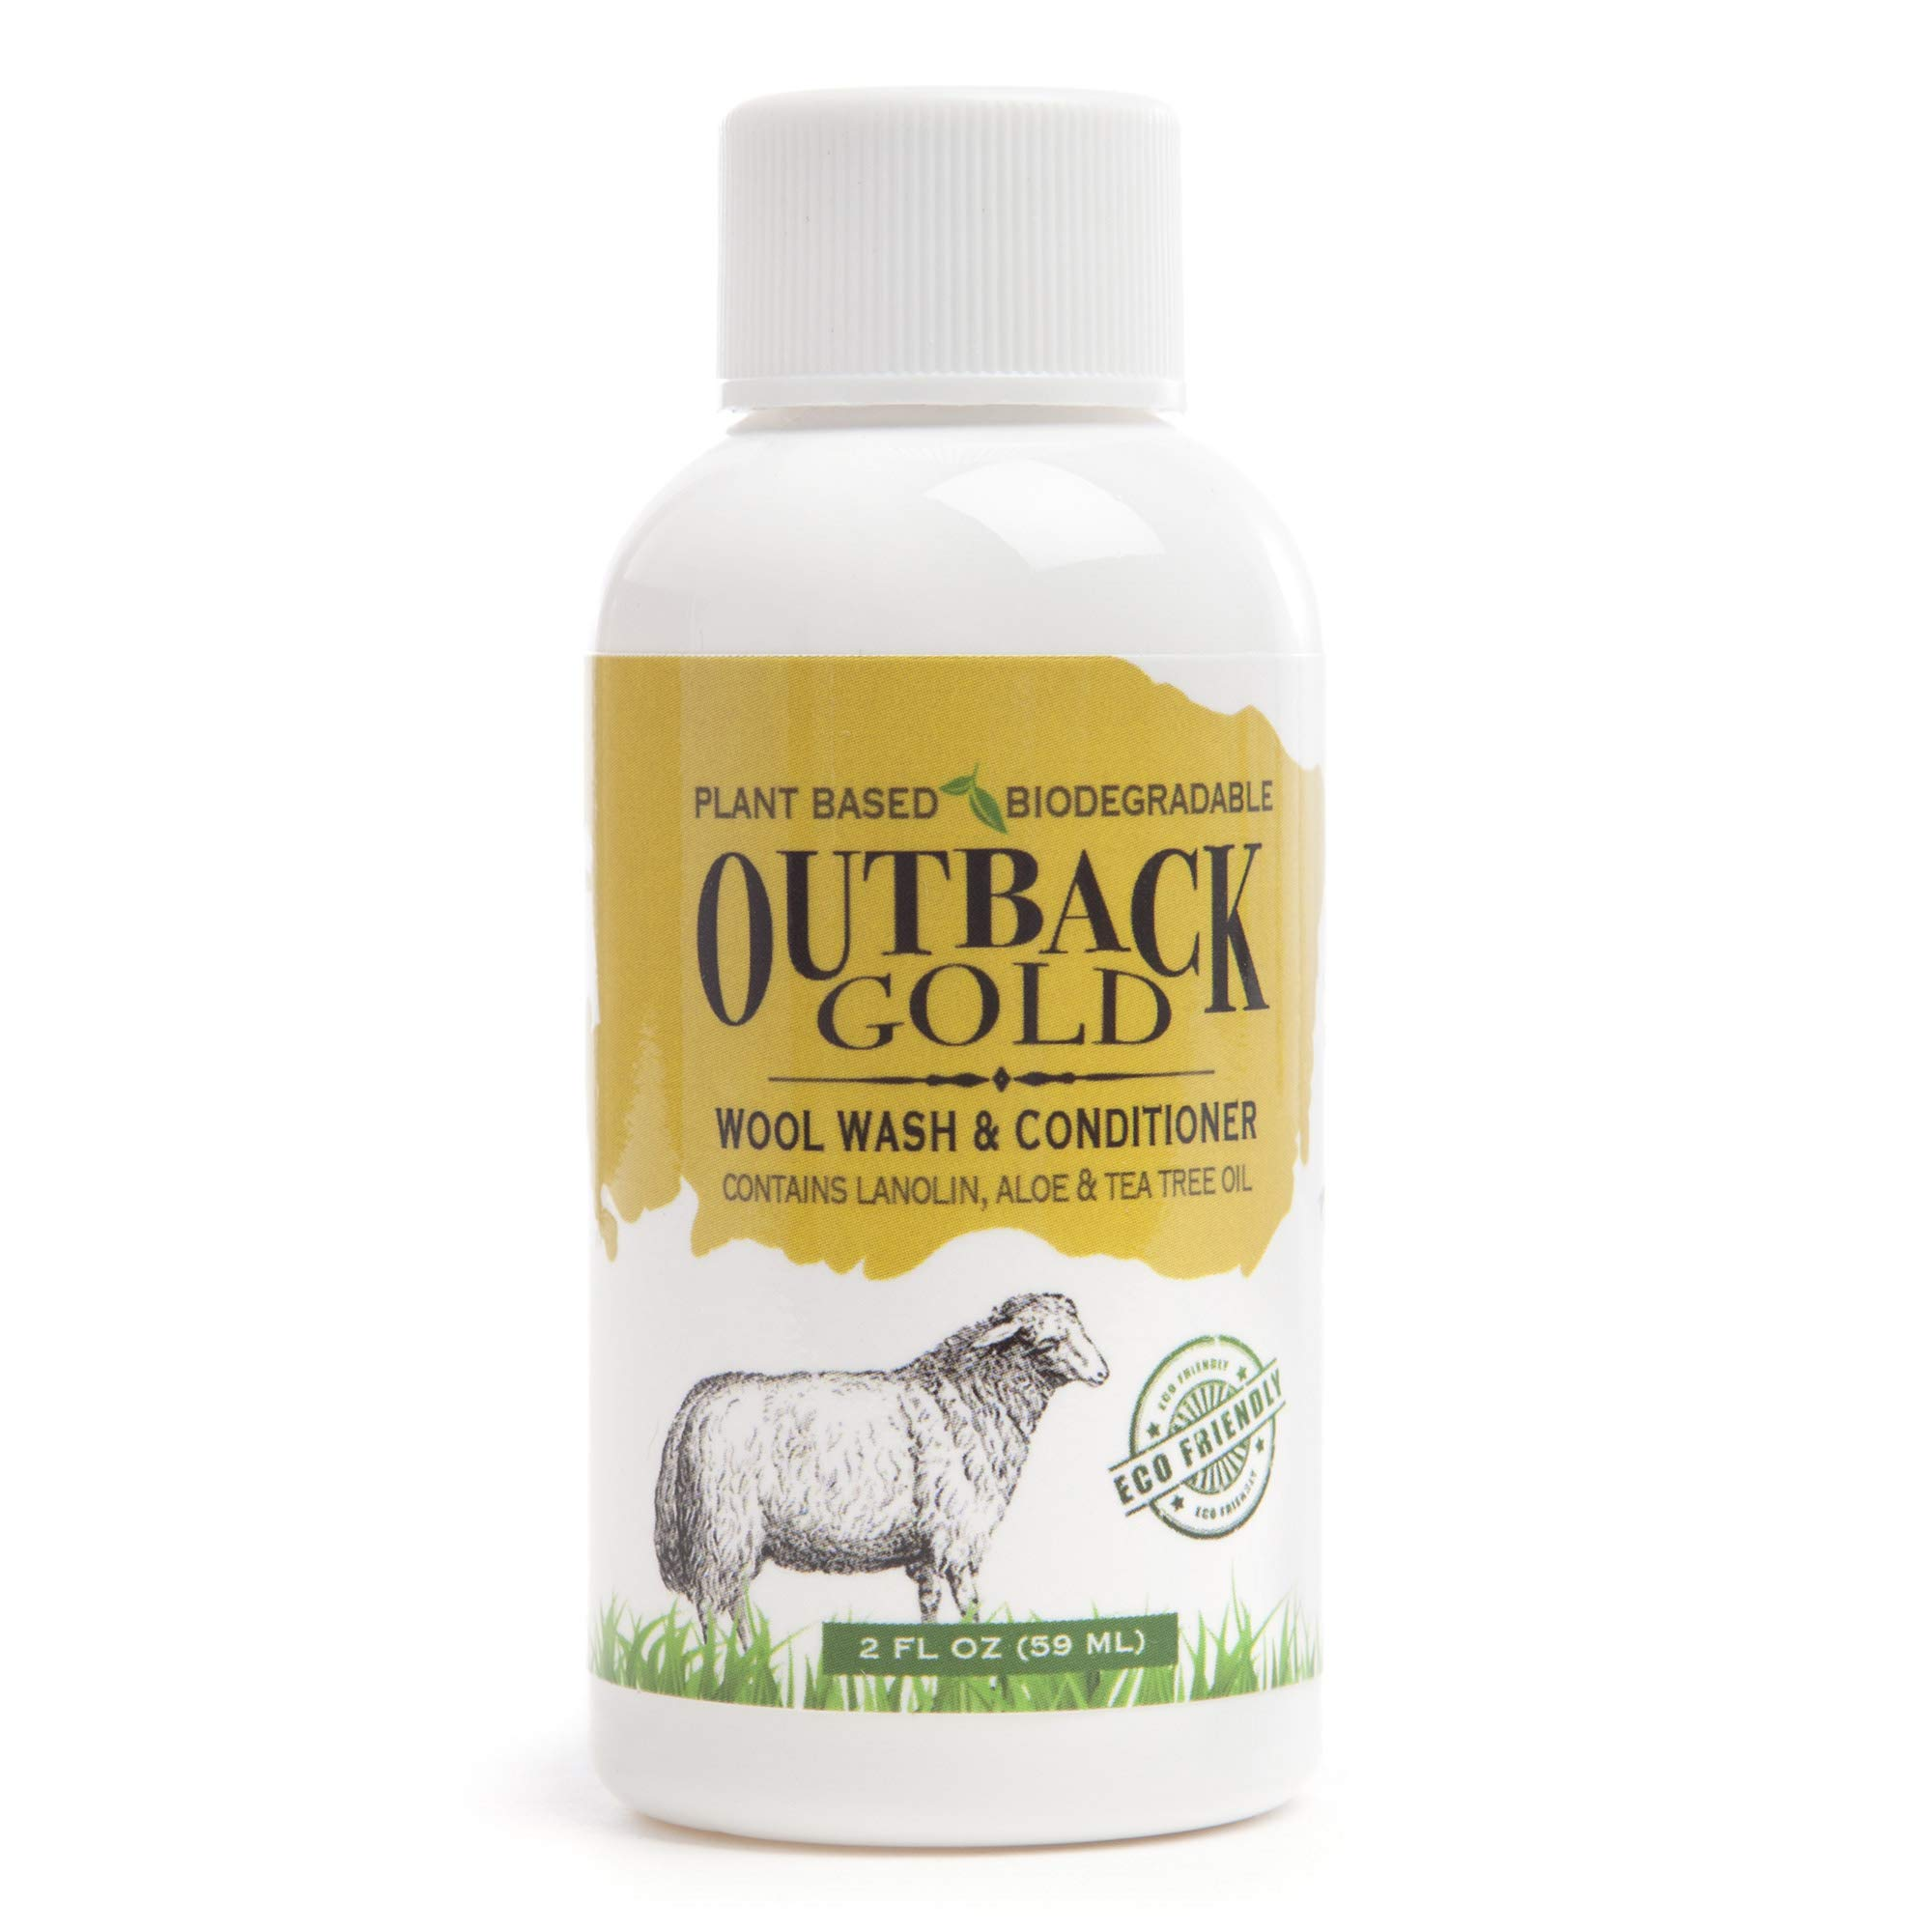 Outback Gold Wool Wash, 2 Ounce, Natural Plant Based Mild Liquid Soap, Cleans and Conditions Sheepskin, Wool and More, with Lanolin, Tea Tree Oil, Aloe, Coconut Oil, Scented with Pure Essential Oils